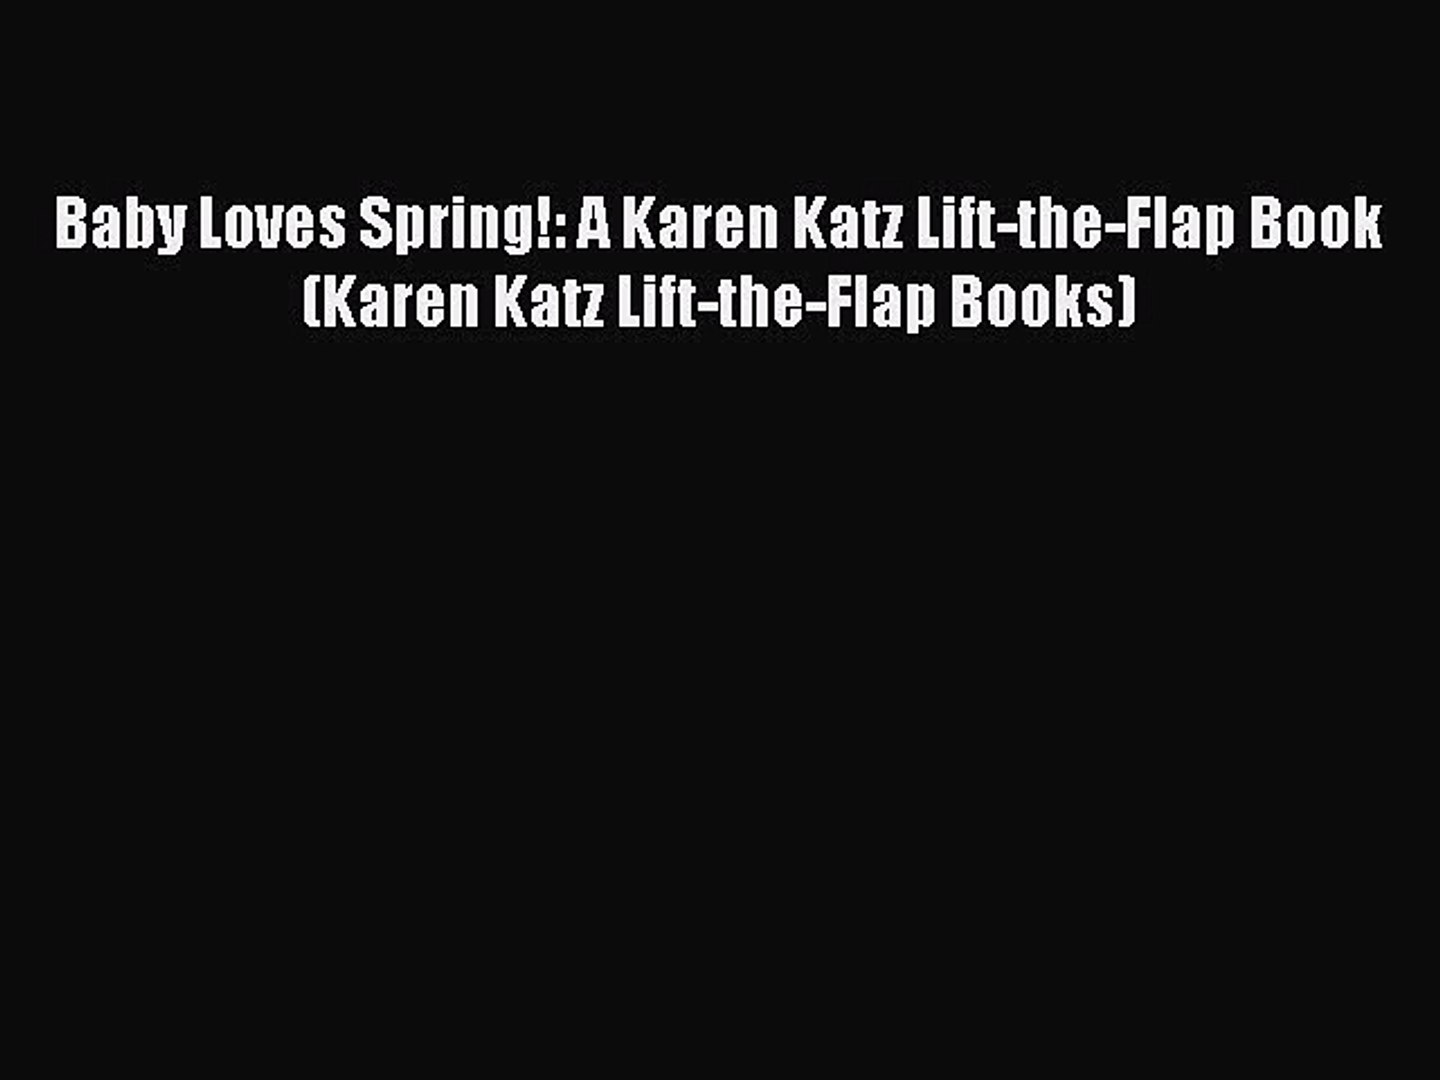 Read Baby Loves Spring!: A Karen Katz Lift-the-Flap Book (Karen Katz Lift-the-Flap Books) Ebook